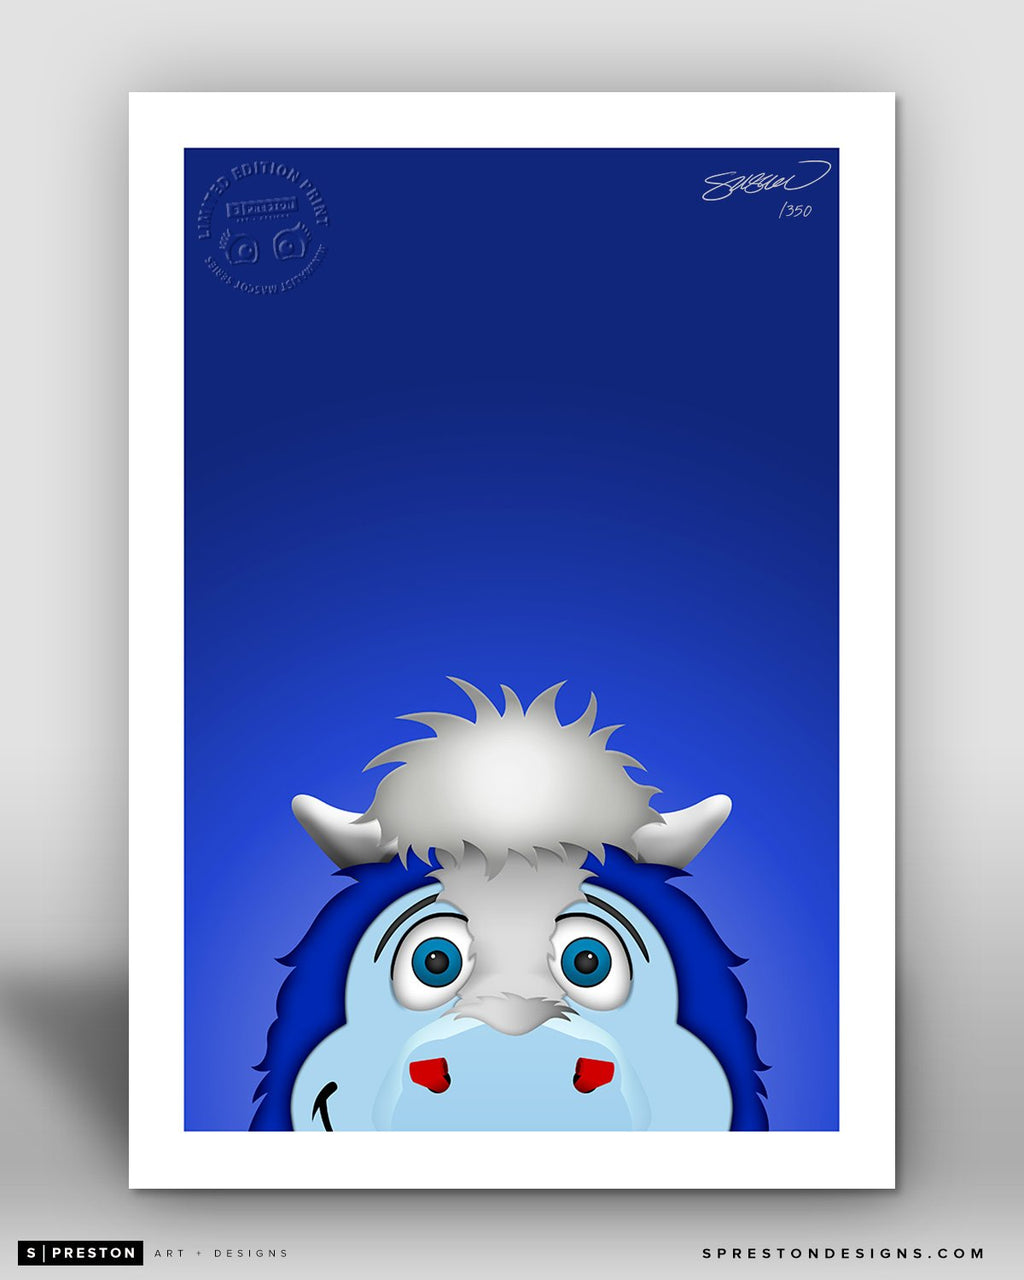 Minimalist Blue by S. Preston - official mascot of the Indianapolis Colts